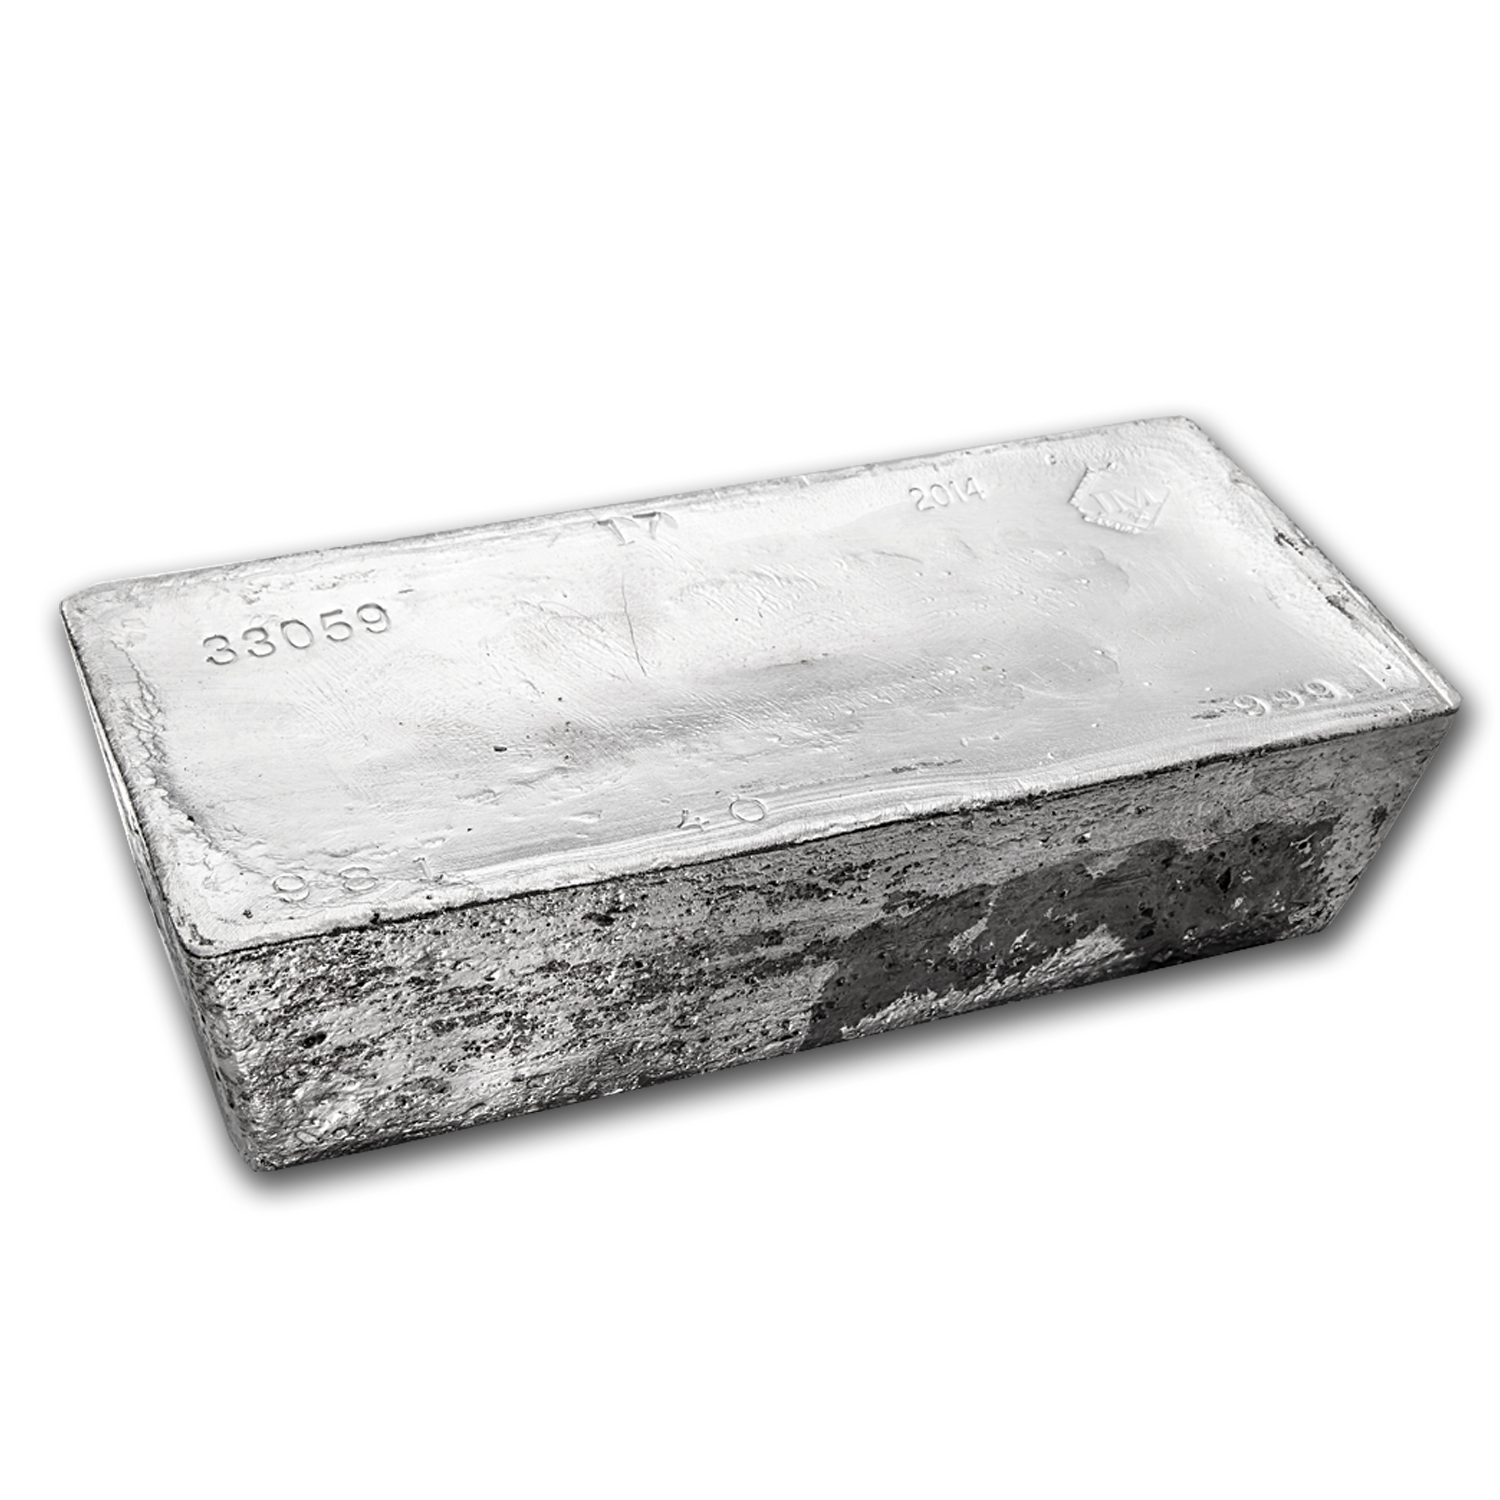 970 oz Silver Bar - Handy & Harman (#1820305-38)